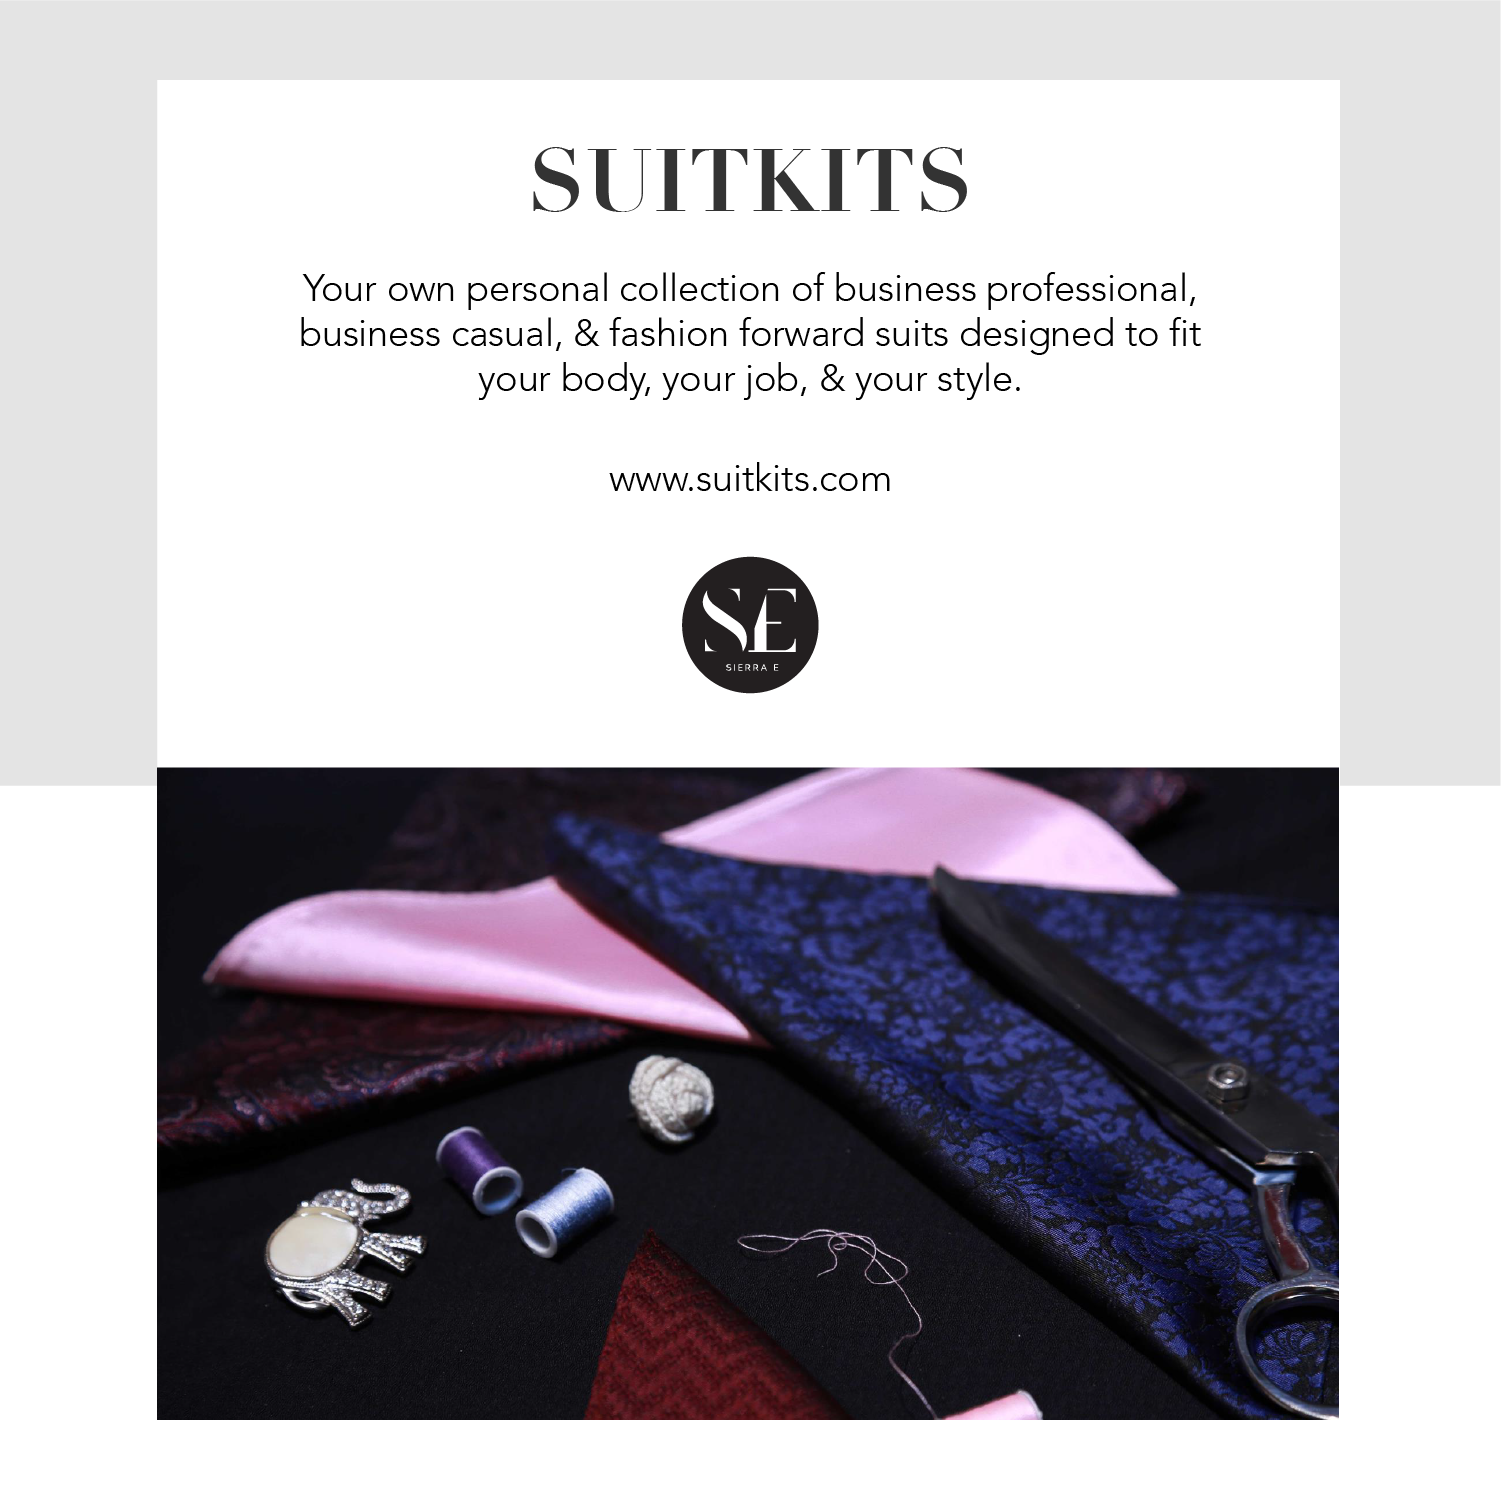 Suitkits-media-v2-05.png